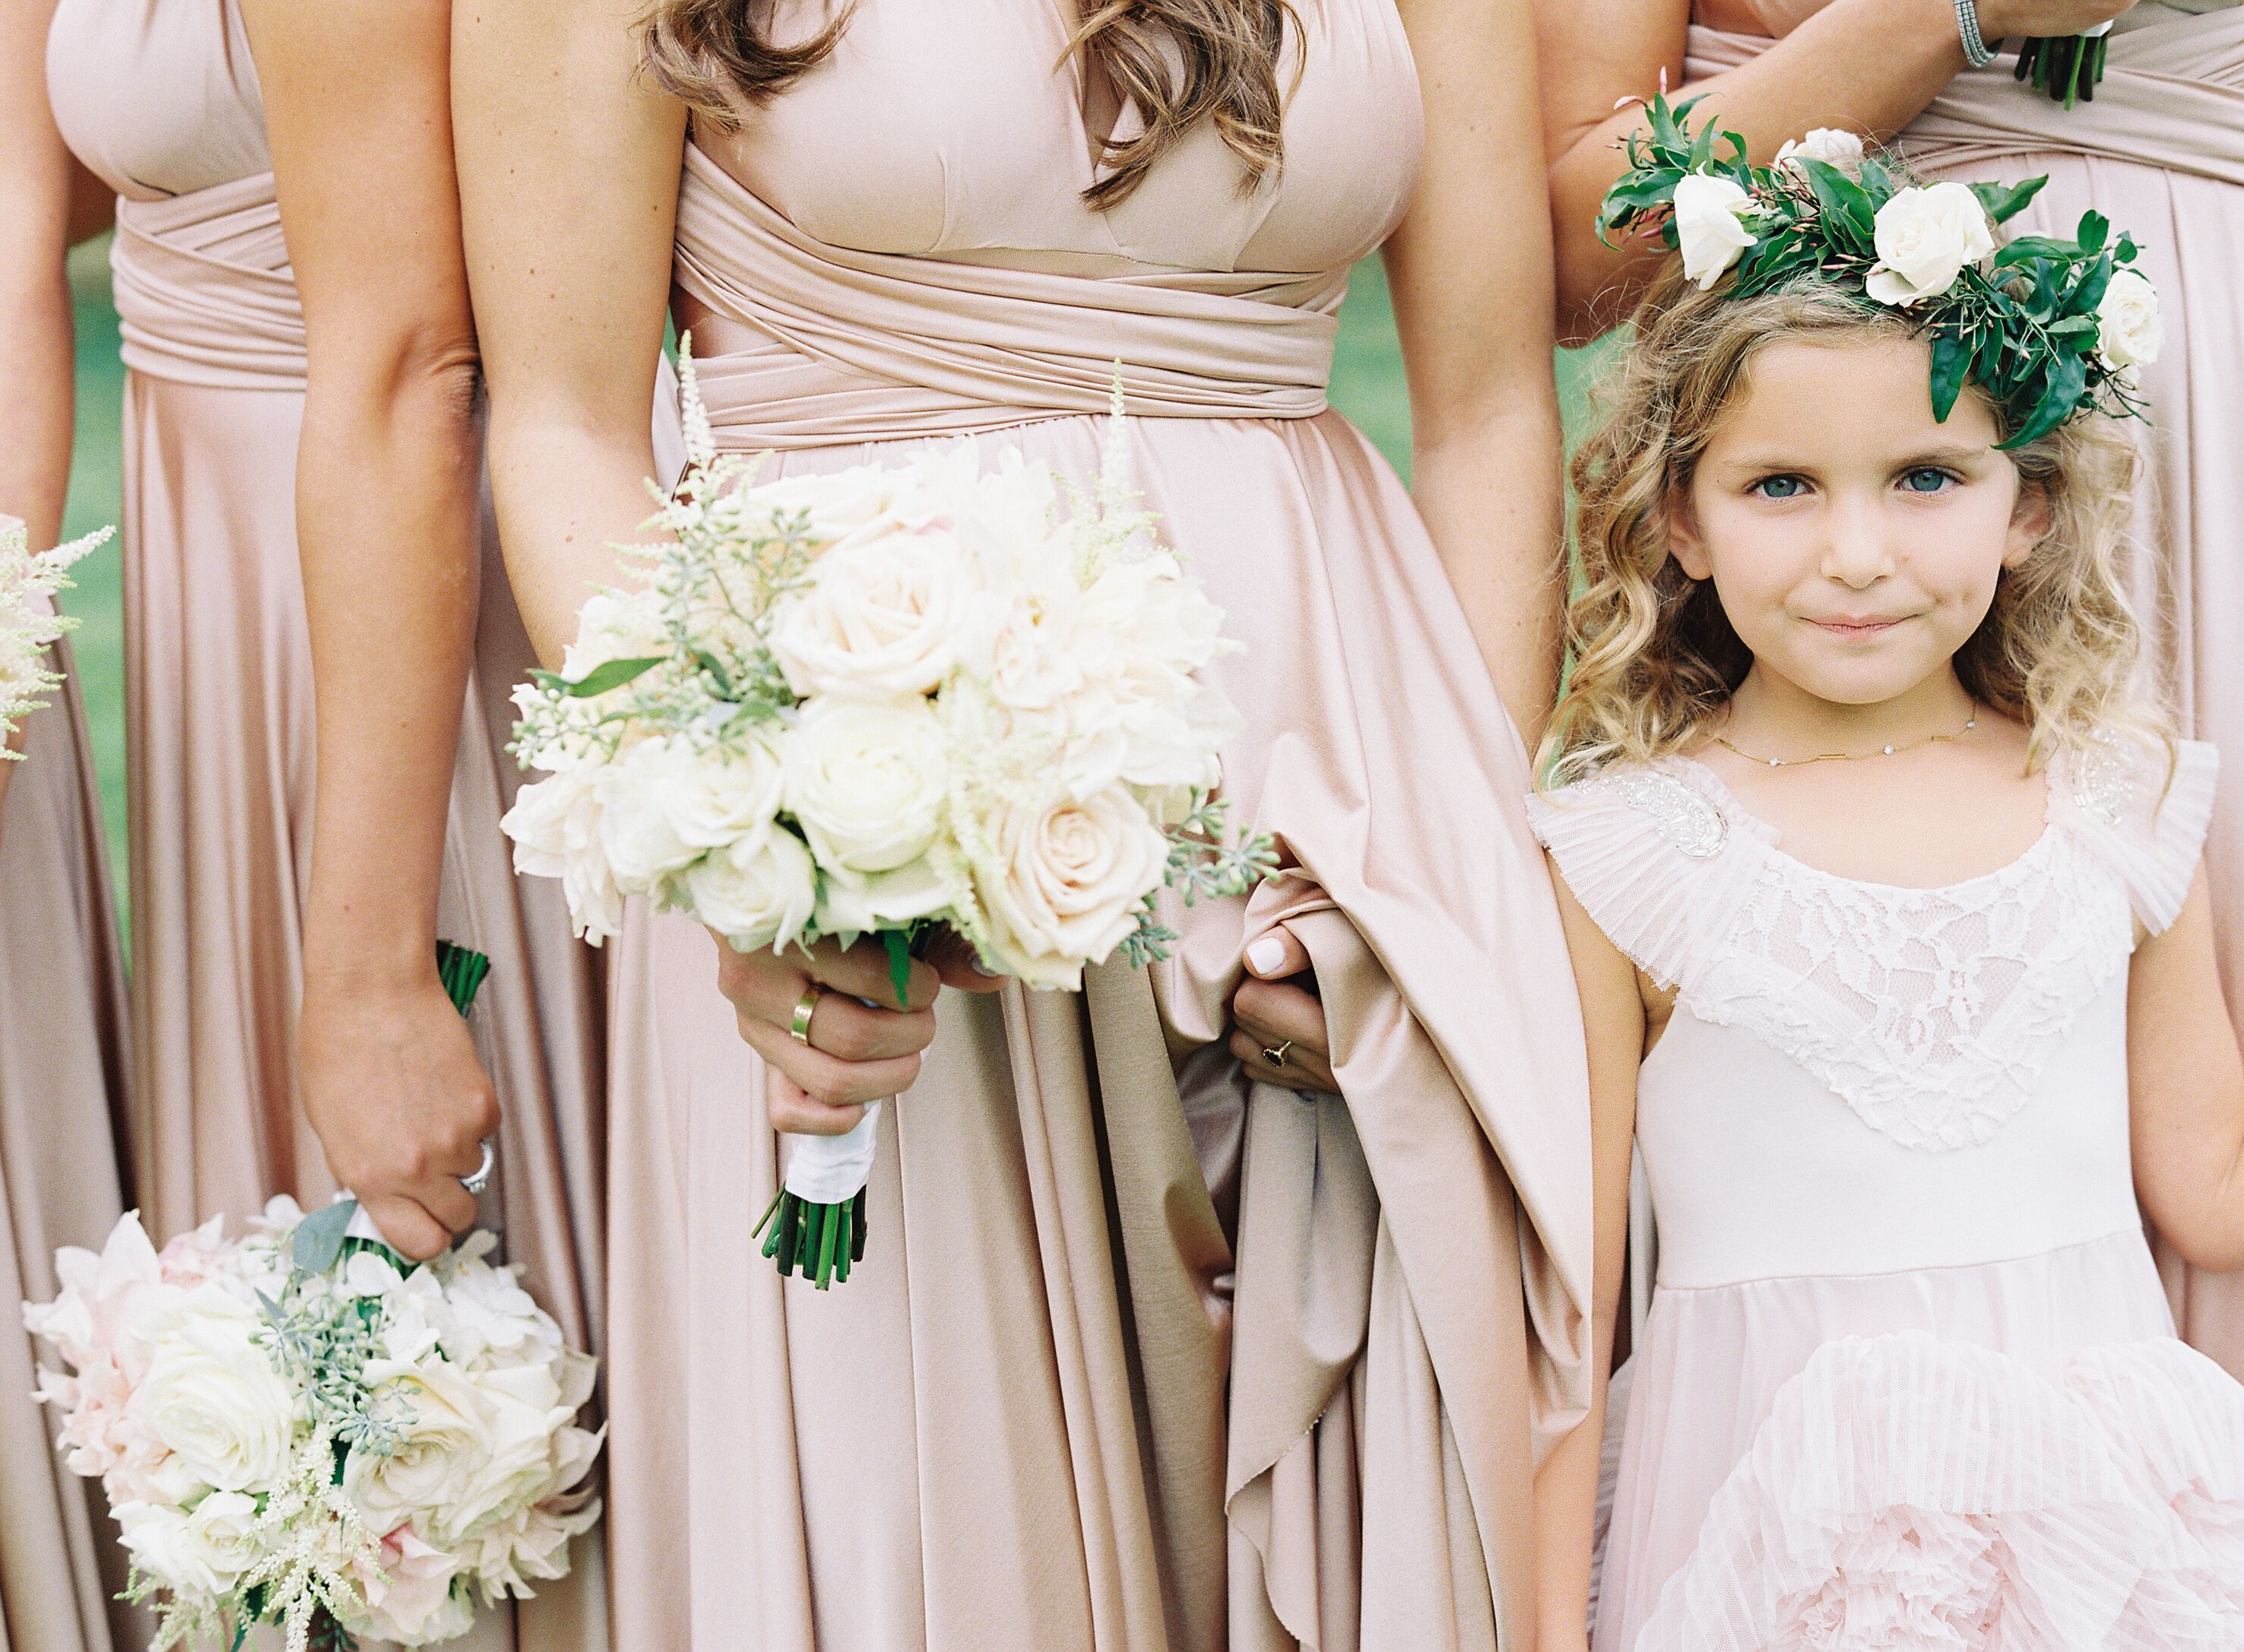 Rosewood rose gold twobirds bridesmaid dresses a real wedding rosewood rose gold twobirds bridesmaid dresses a real wedding featuring our multi way ombrellifo Image collections